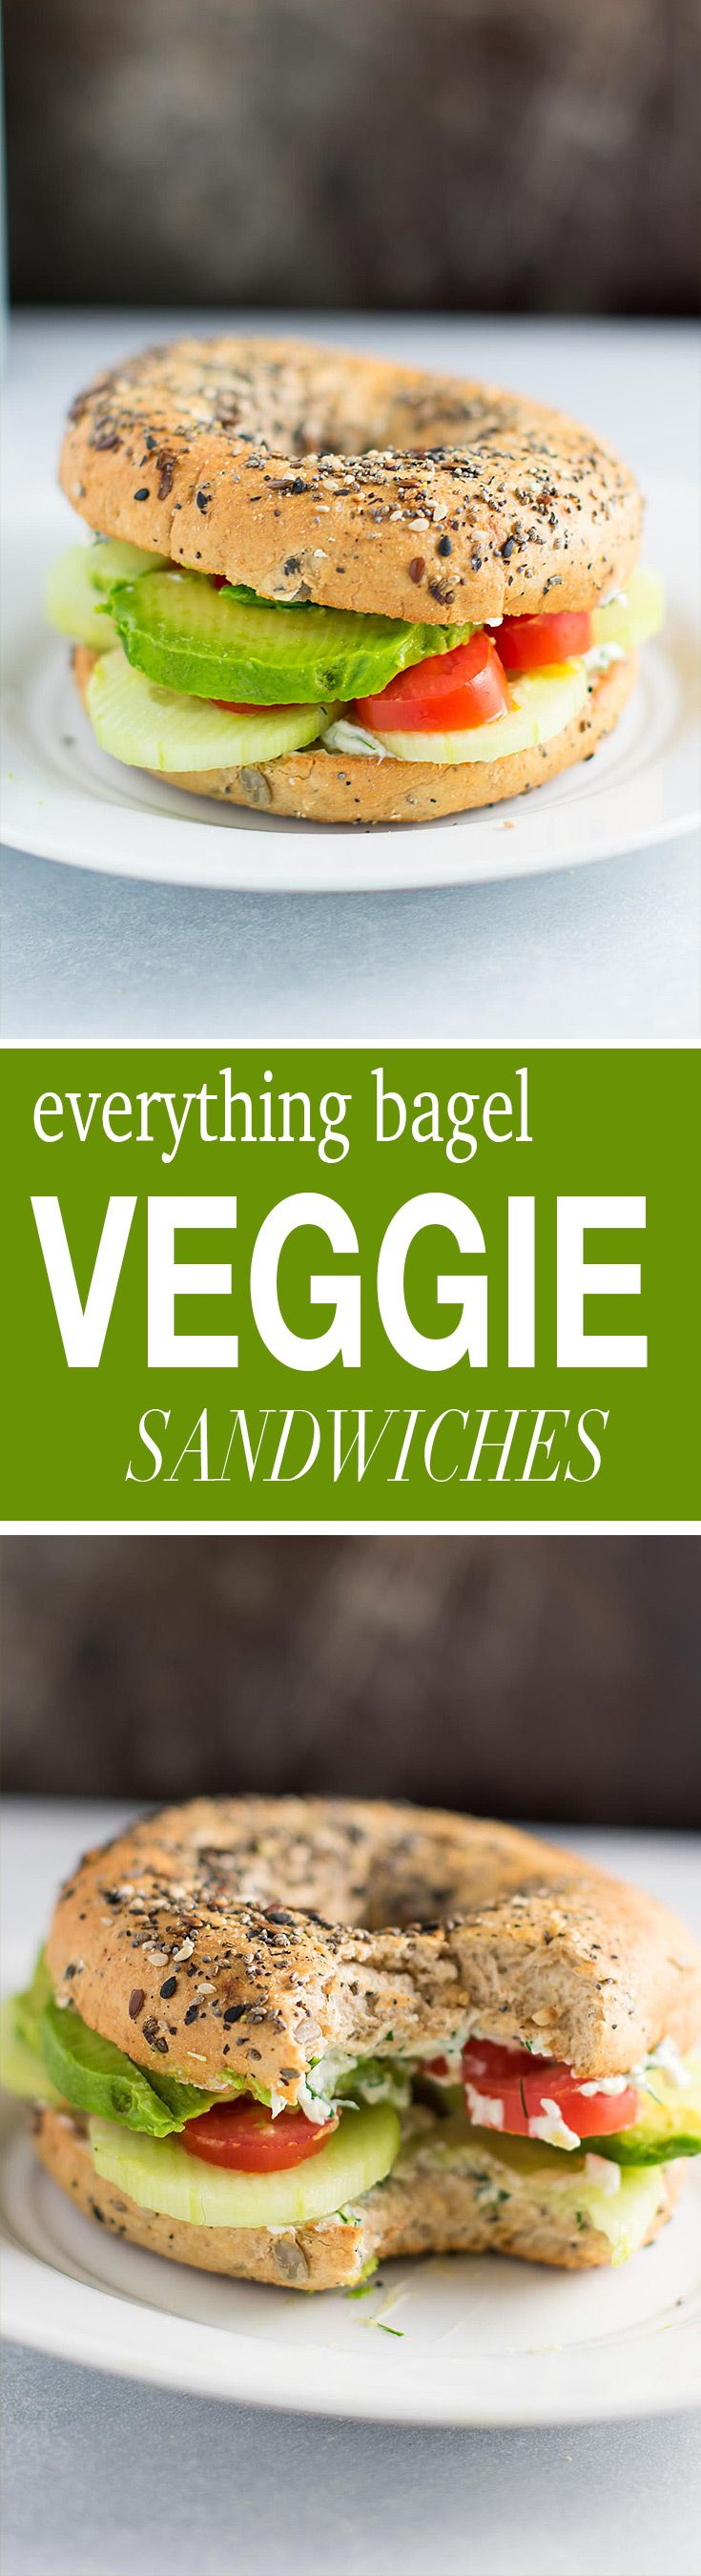 Everything bagel veggie sandwiches with garlic dill cream cheese. Add cucumbers, sliced tomato, avocado, or the veggies of your choice!